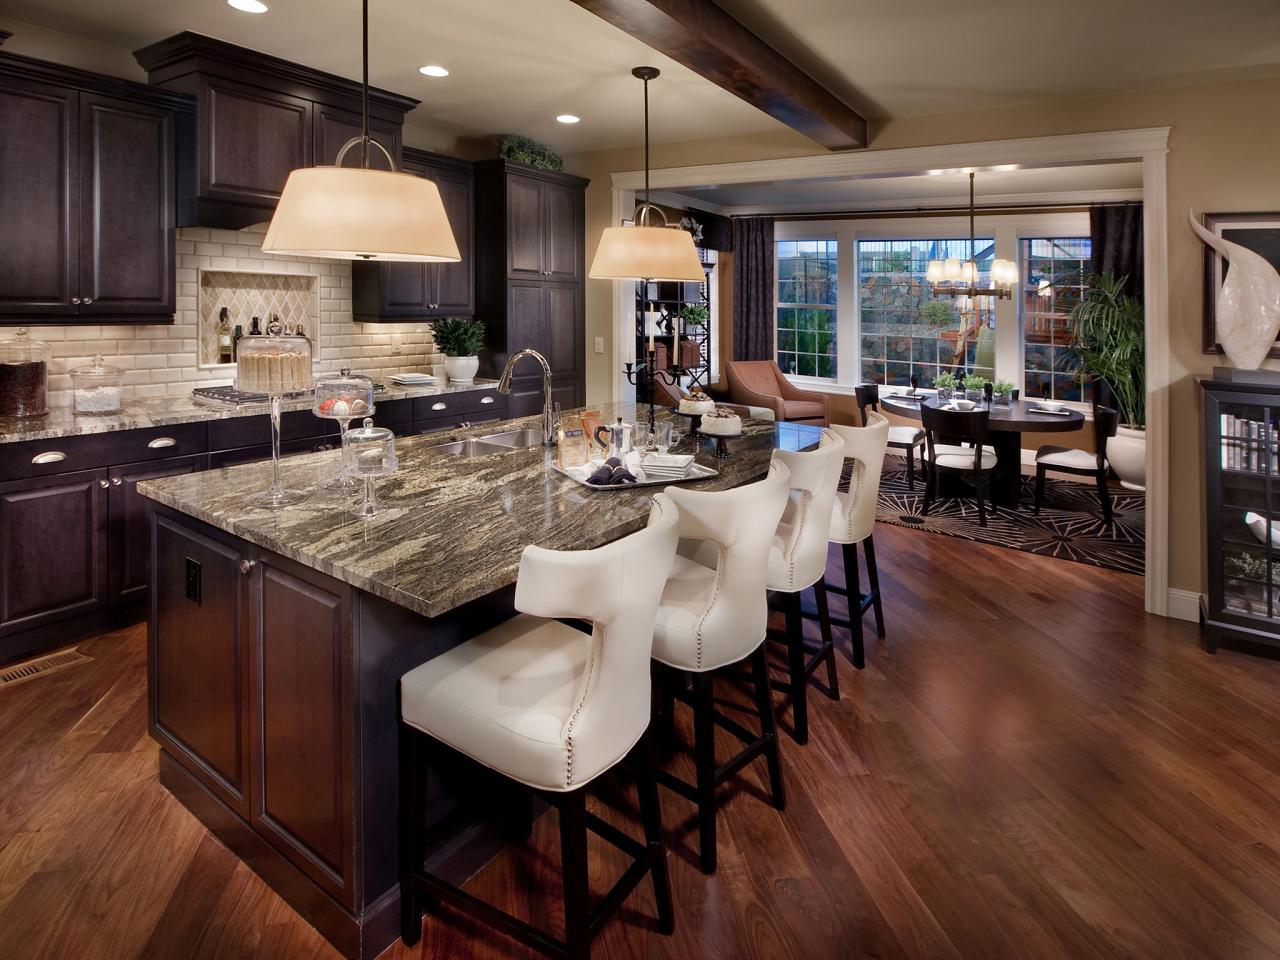 Kitchen Remodel Designer Kitchen Island Design Ideas Pictures Options & Tips  Hgtv